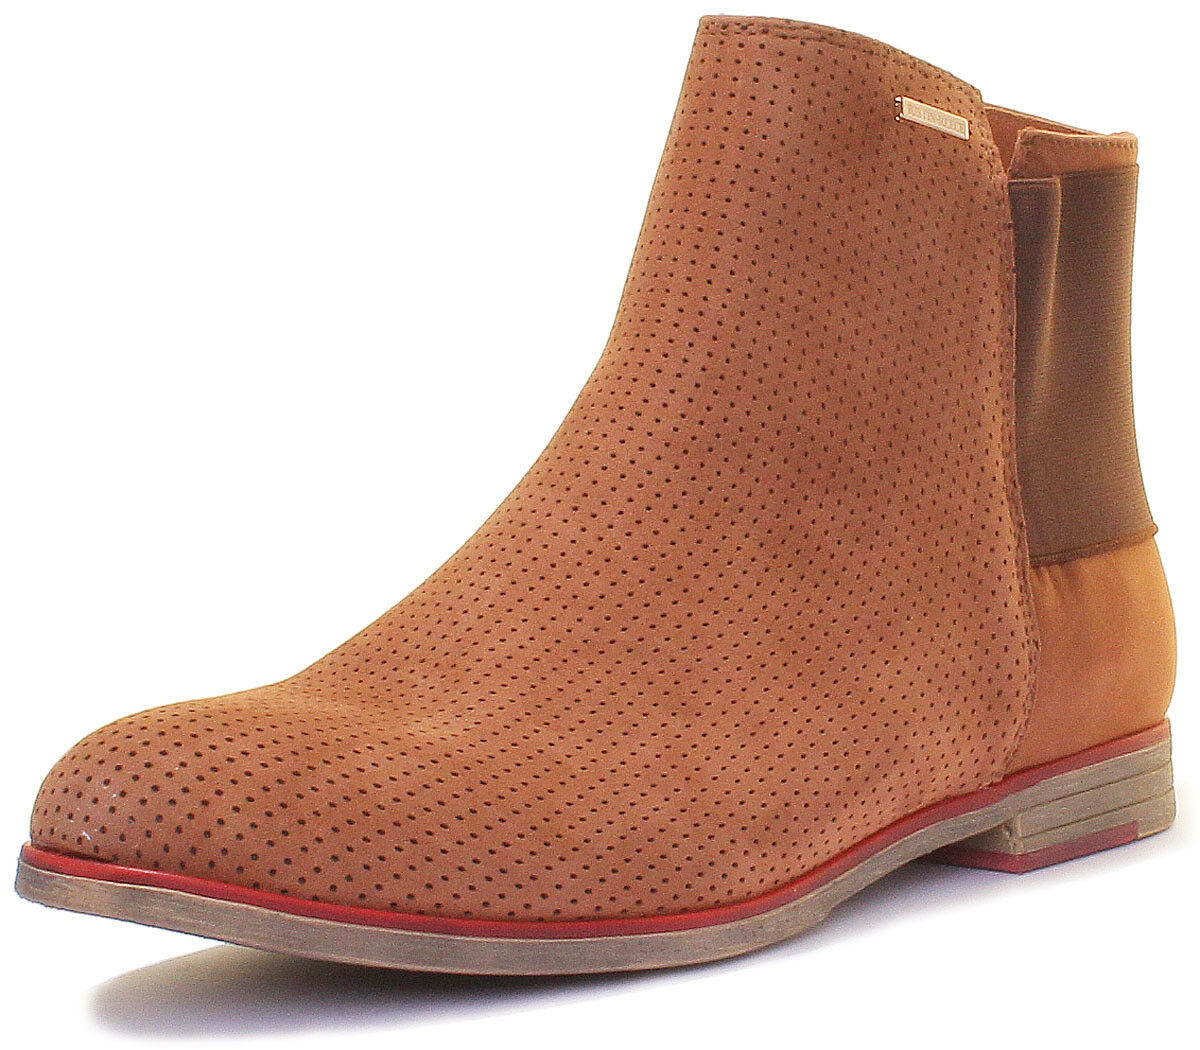 Justin Leather Reece 5900 Women Leather Justin Matt Brown Chelsea Boots 325d1a